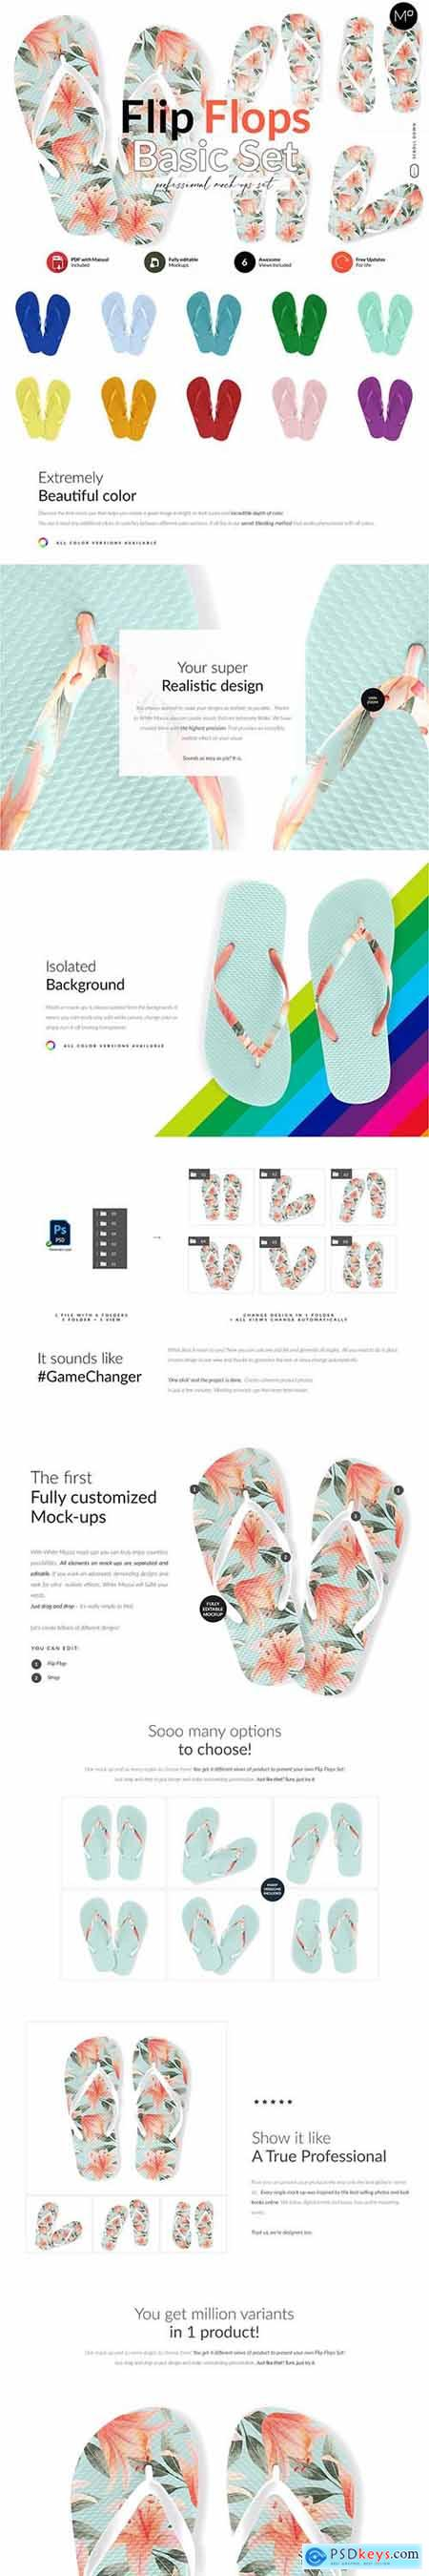 Flip Flops Basic Set Mock-ups 6018077